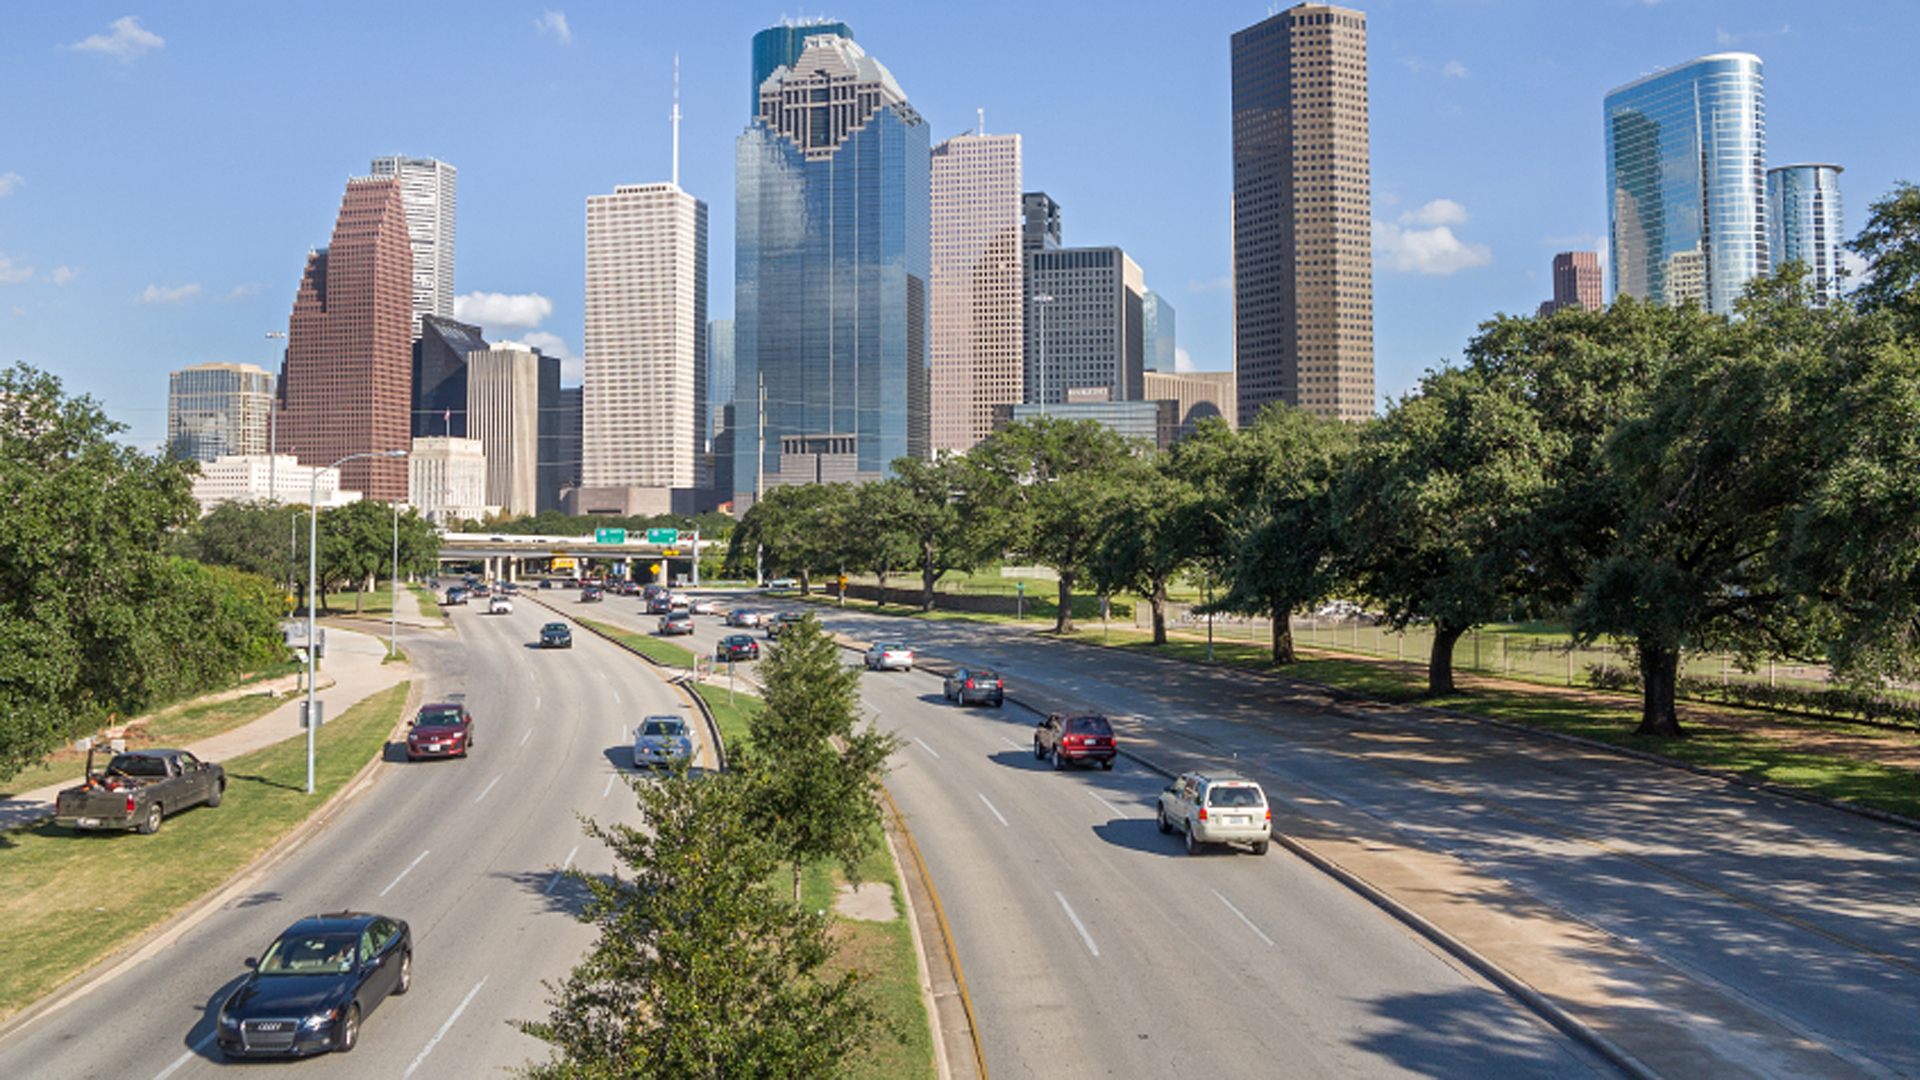 Fleet Trucking- Spotlight on Houston, Texas